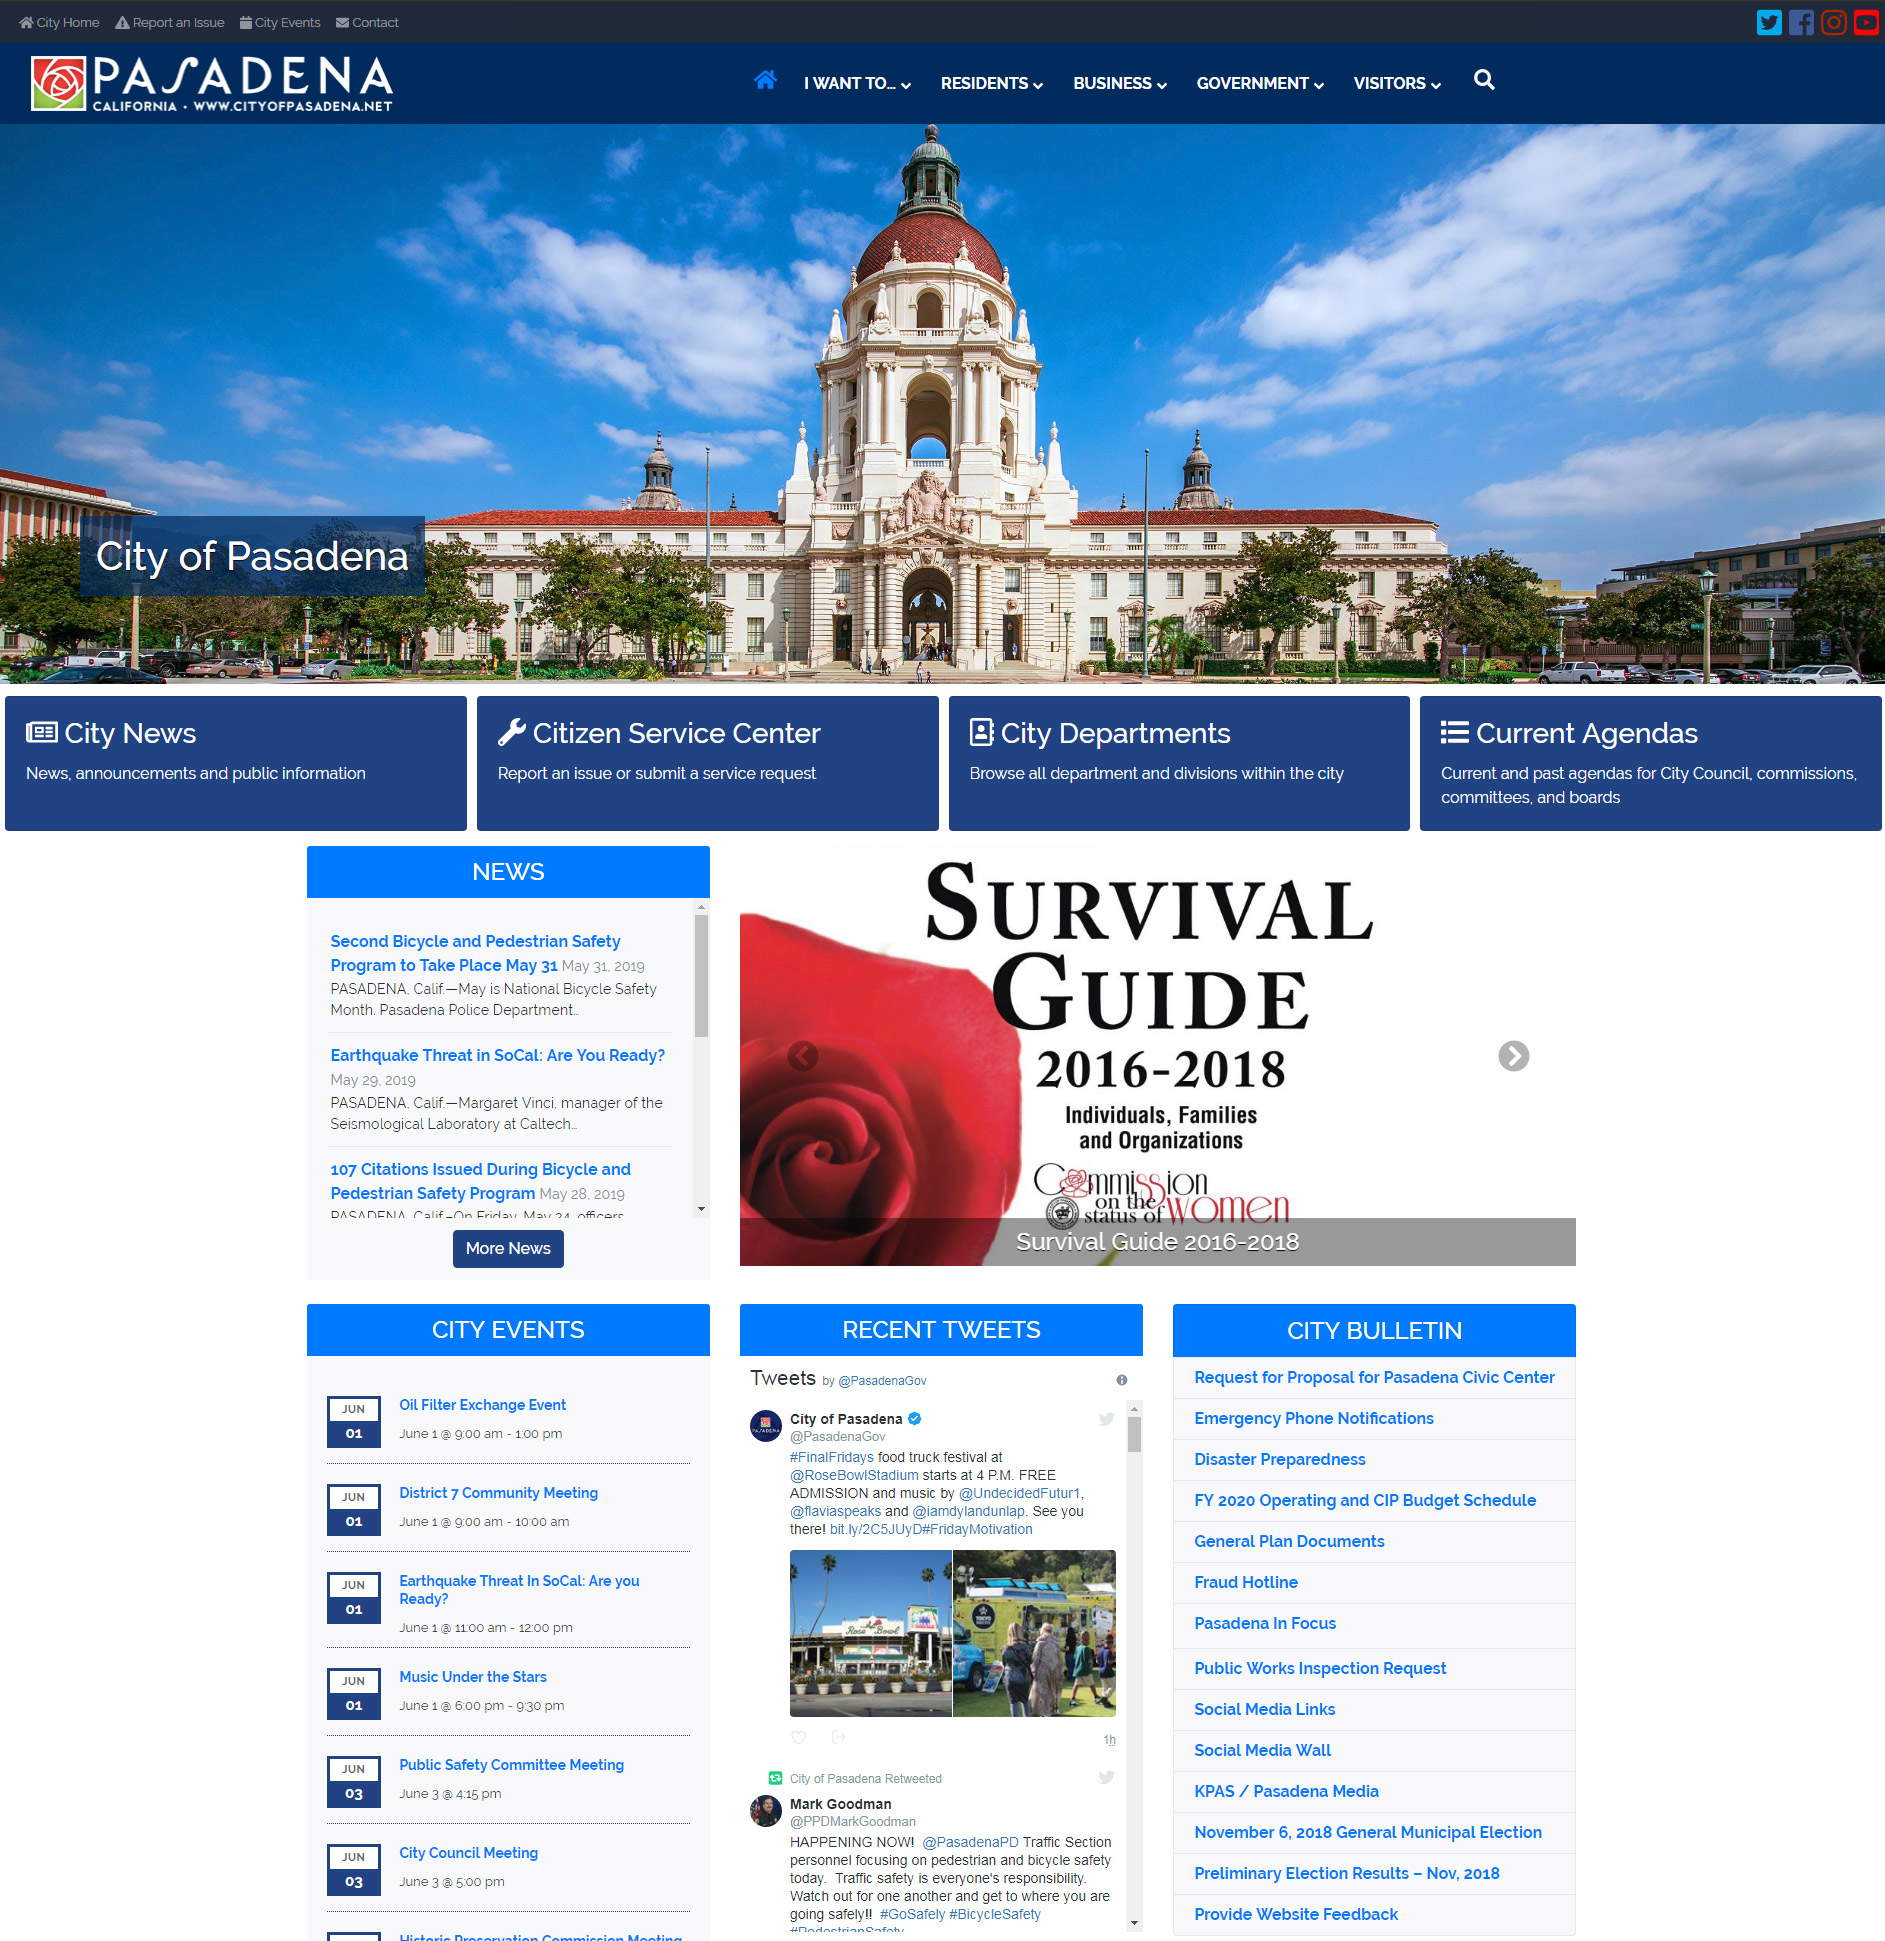 The Official Website of City of Pasadena, California image